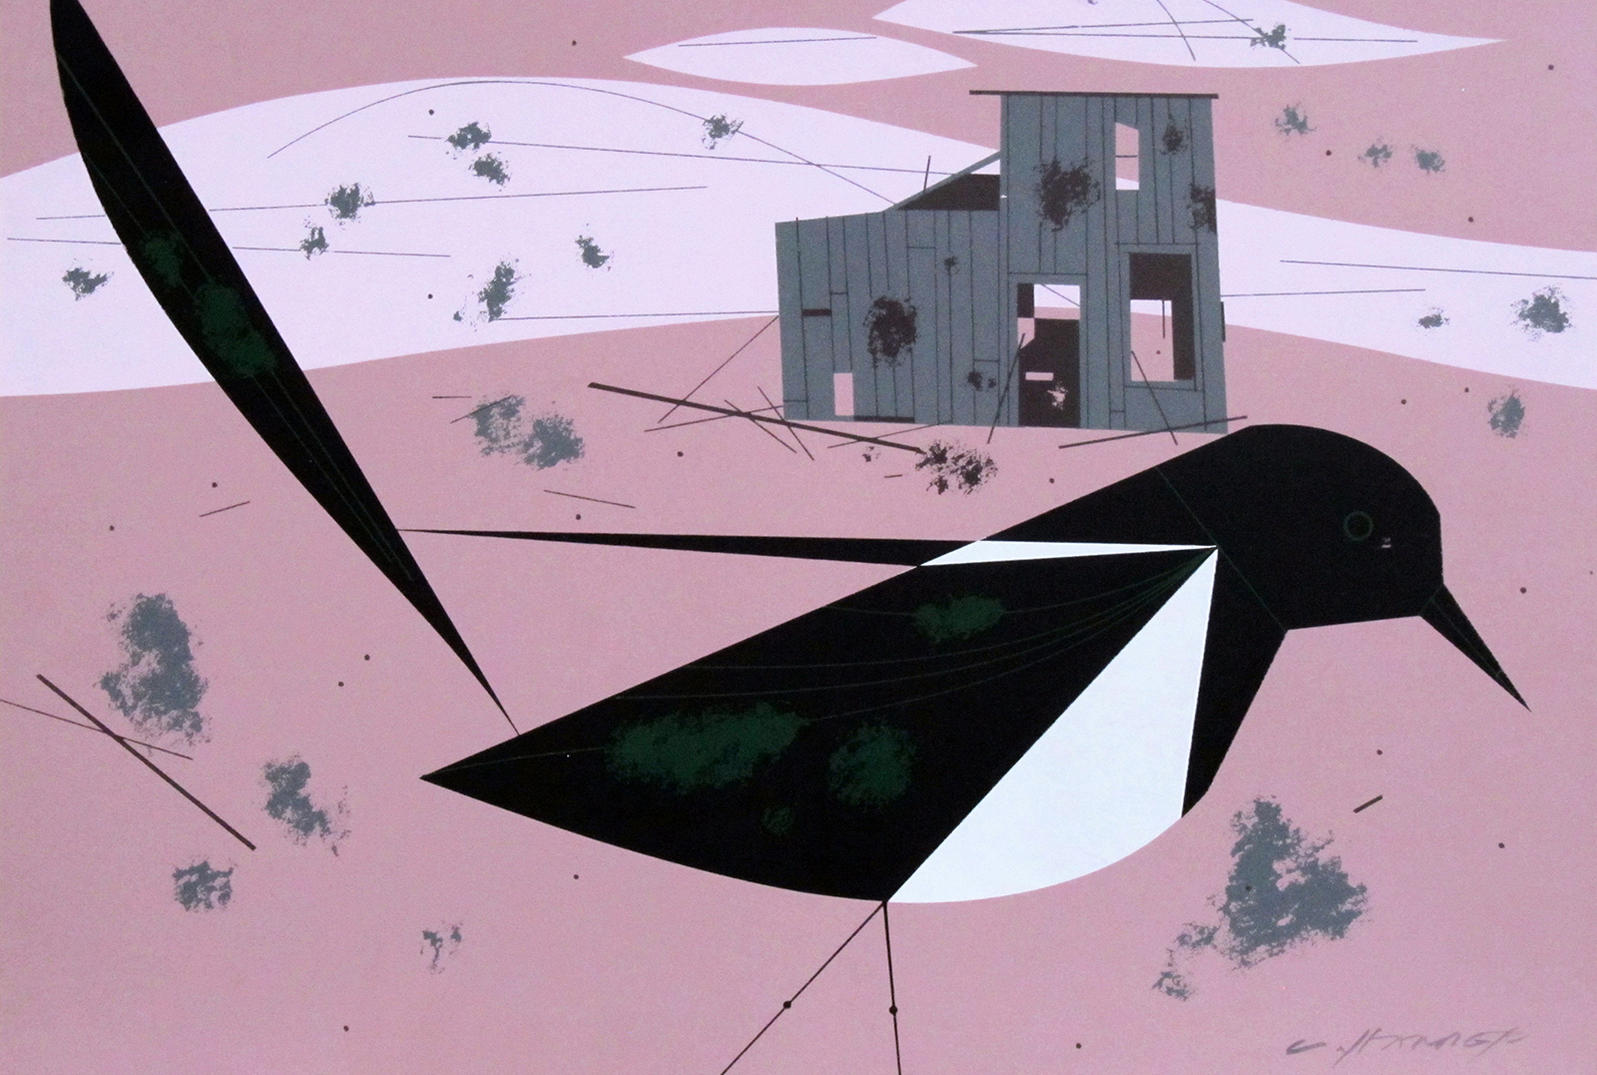 This poor magpie is sick of having a reputation for stealing. Credit: Charley Harper/AMMO